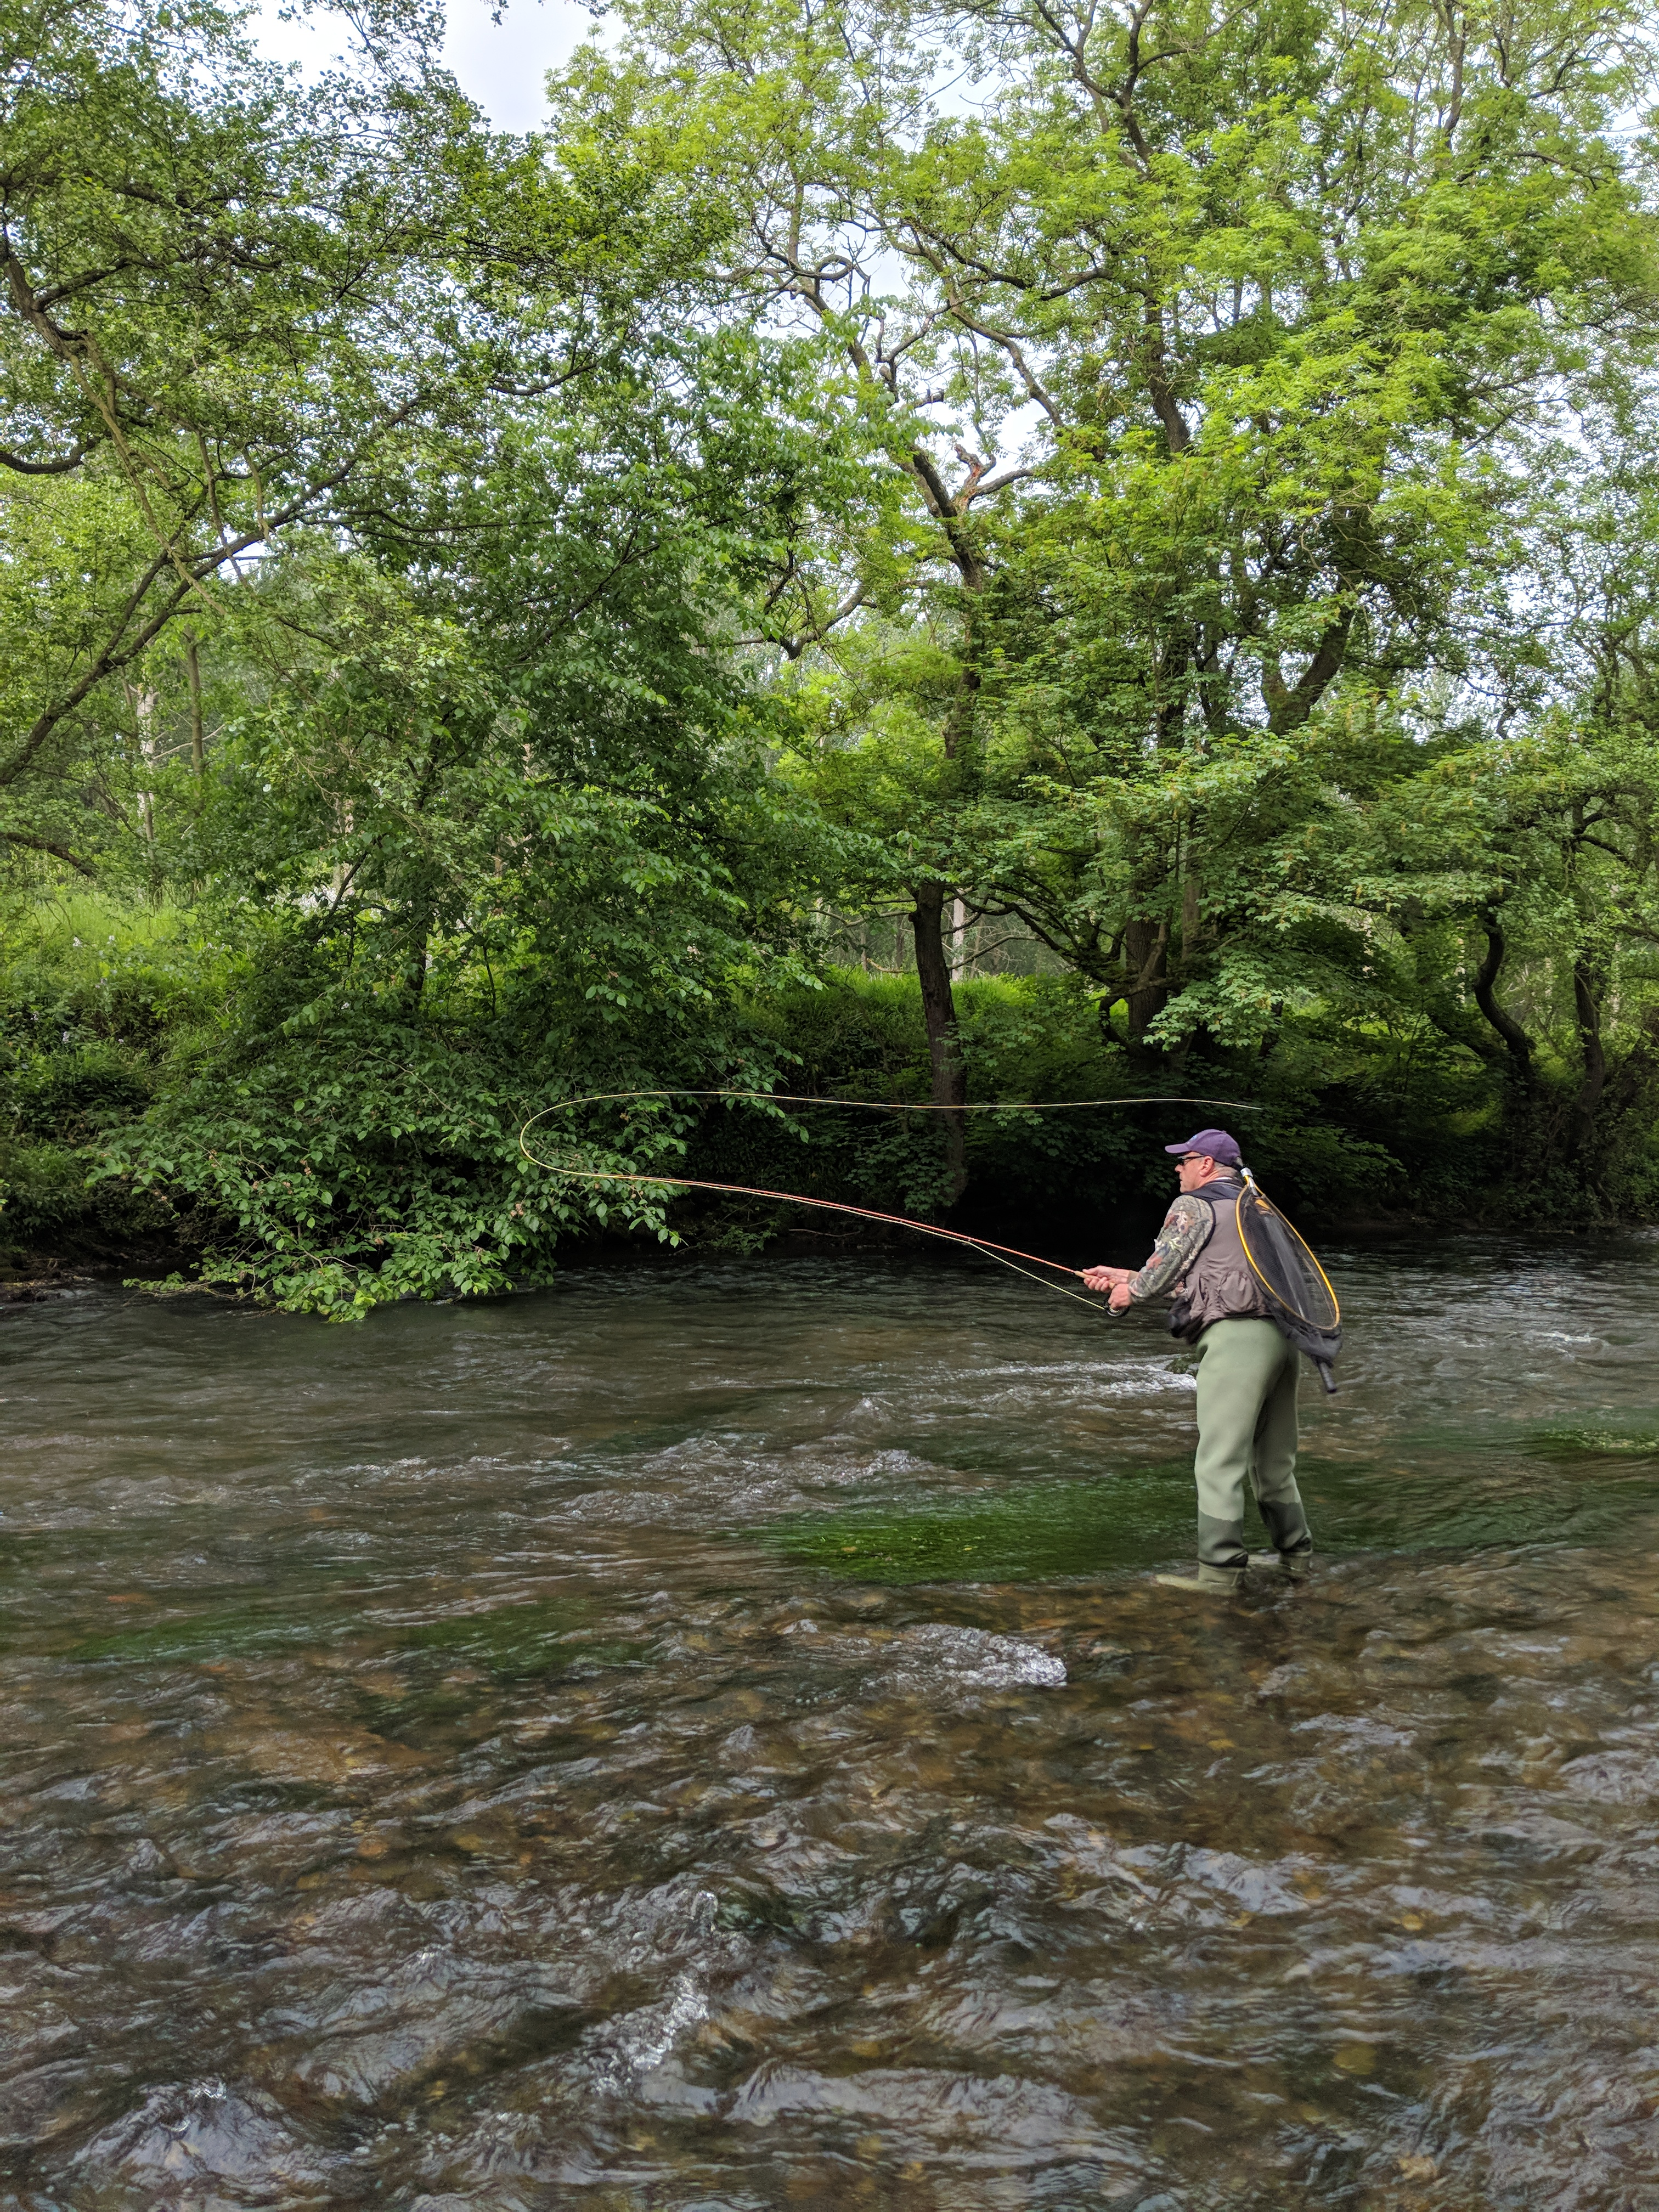 Fly Fishing Lessons – Up To 30% Off In Our Big Summer Sale